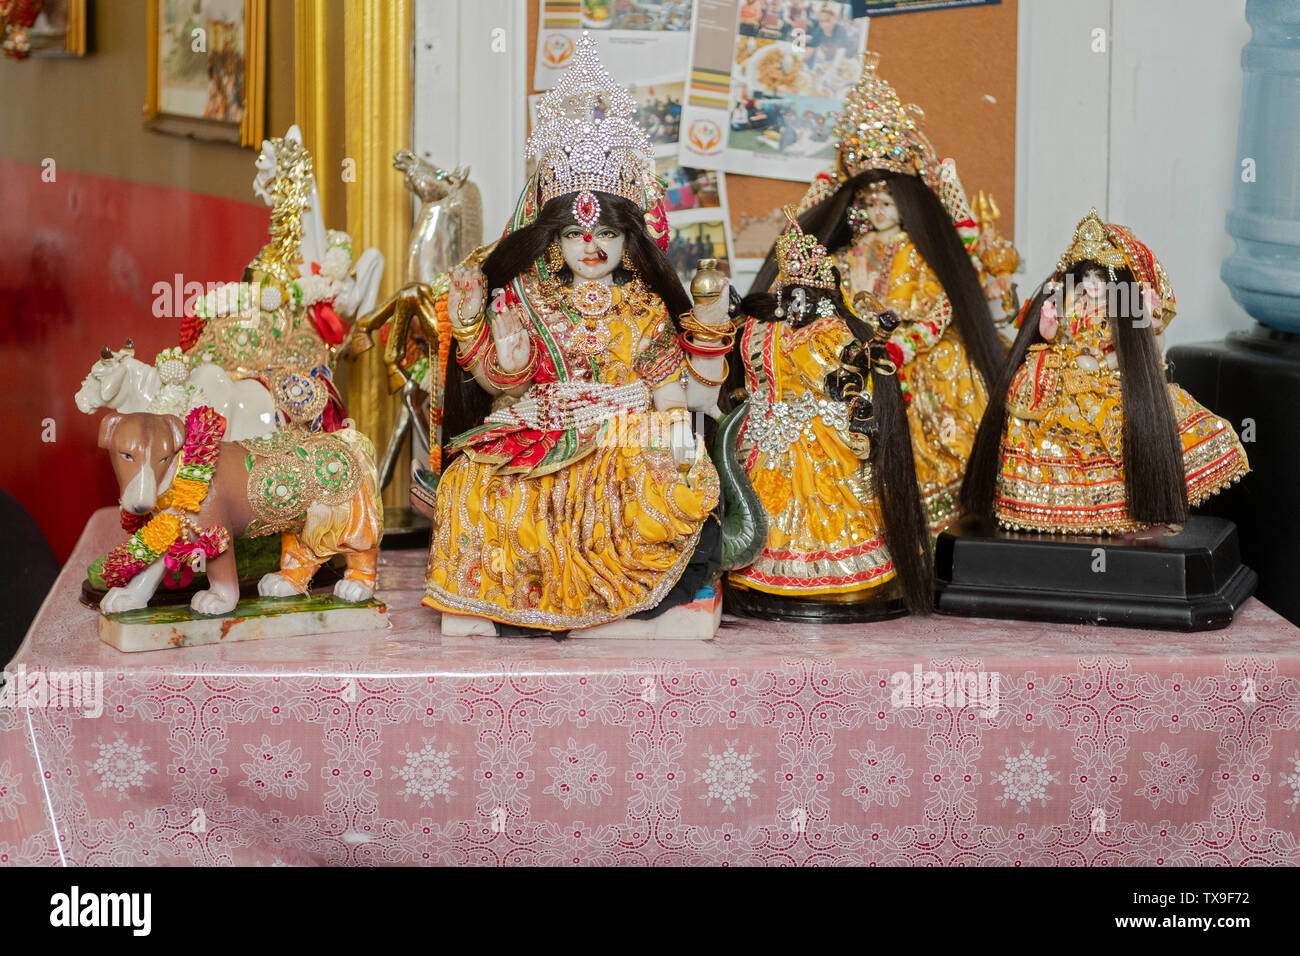 Small statues of Hindu deities with new clothing that was handmade as part of a ritual of giving thanks. In Queens, New York City. - Stock Image